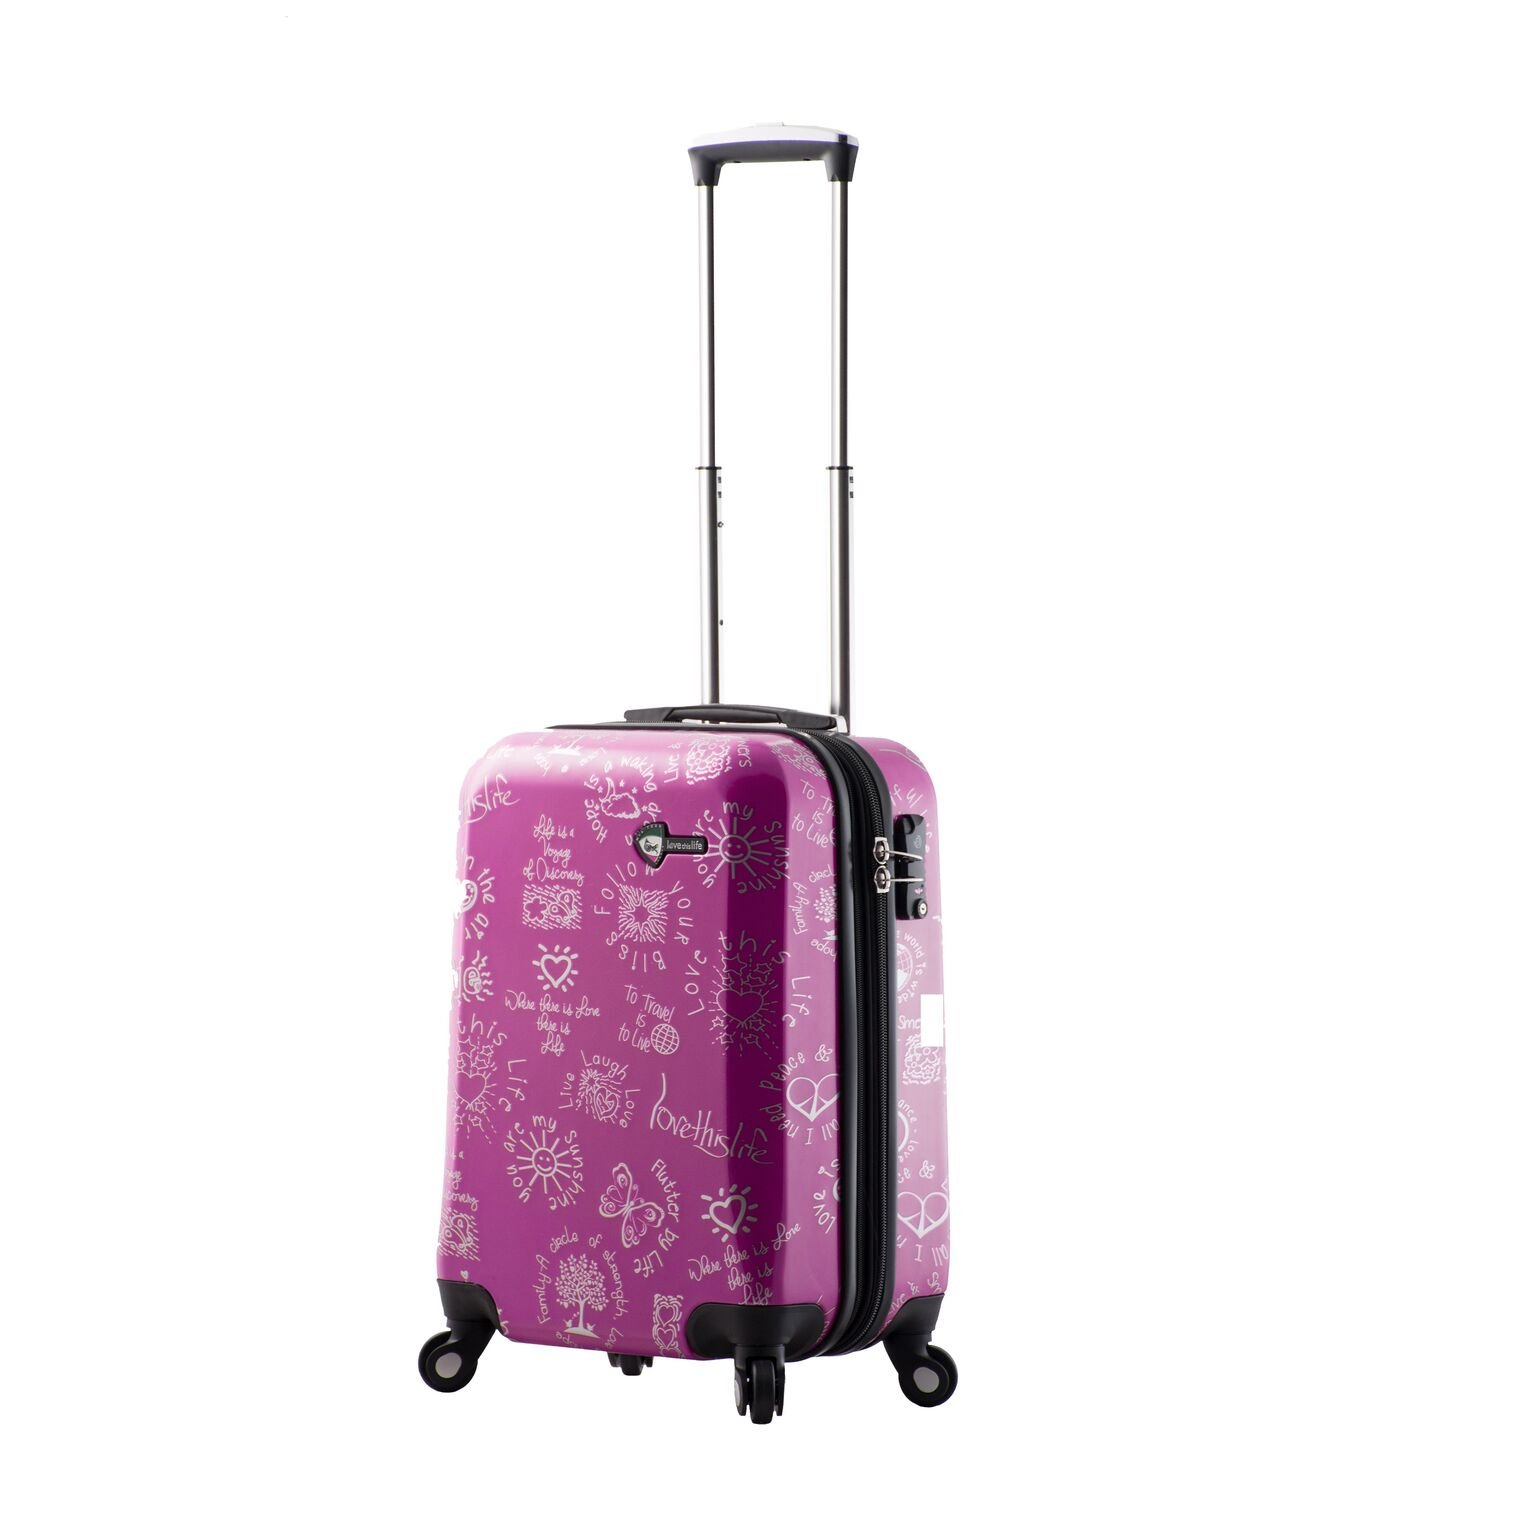 Mia Toro M1089-20in-Pur Love This Life-Medallions Hardside Spinner Luggage 20'' Carry-on, Purple